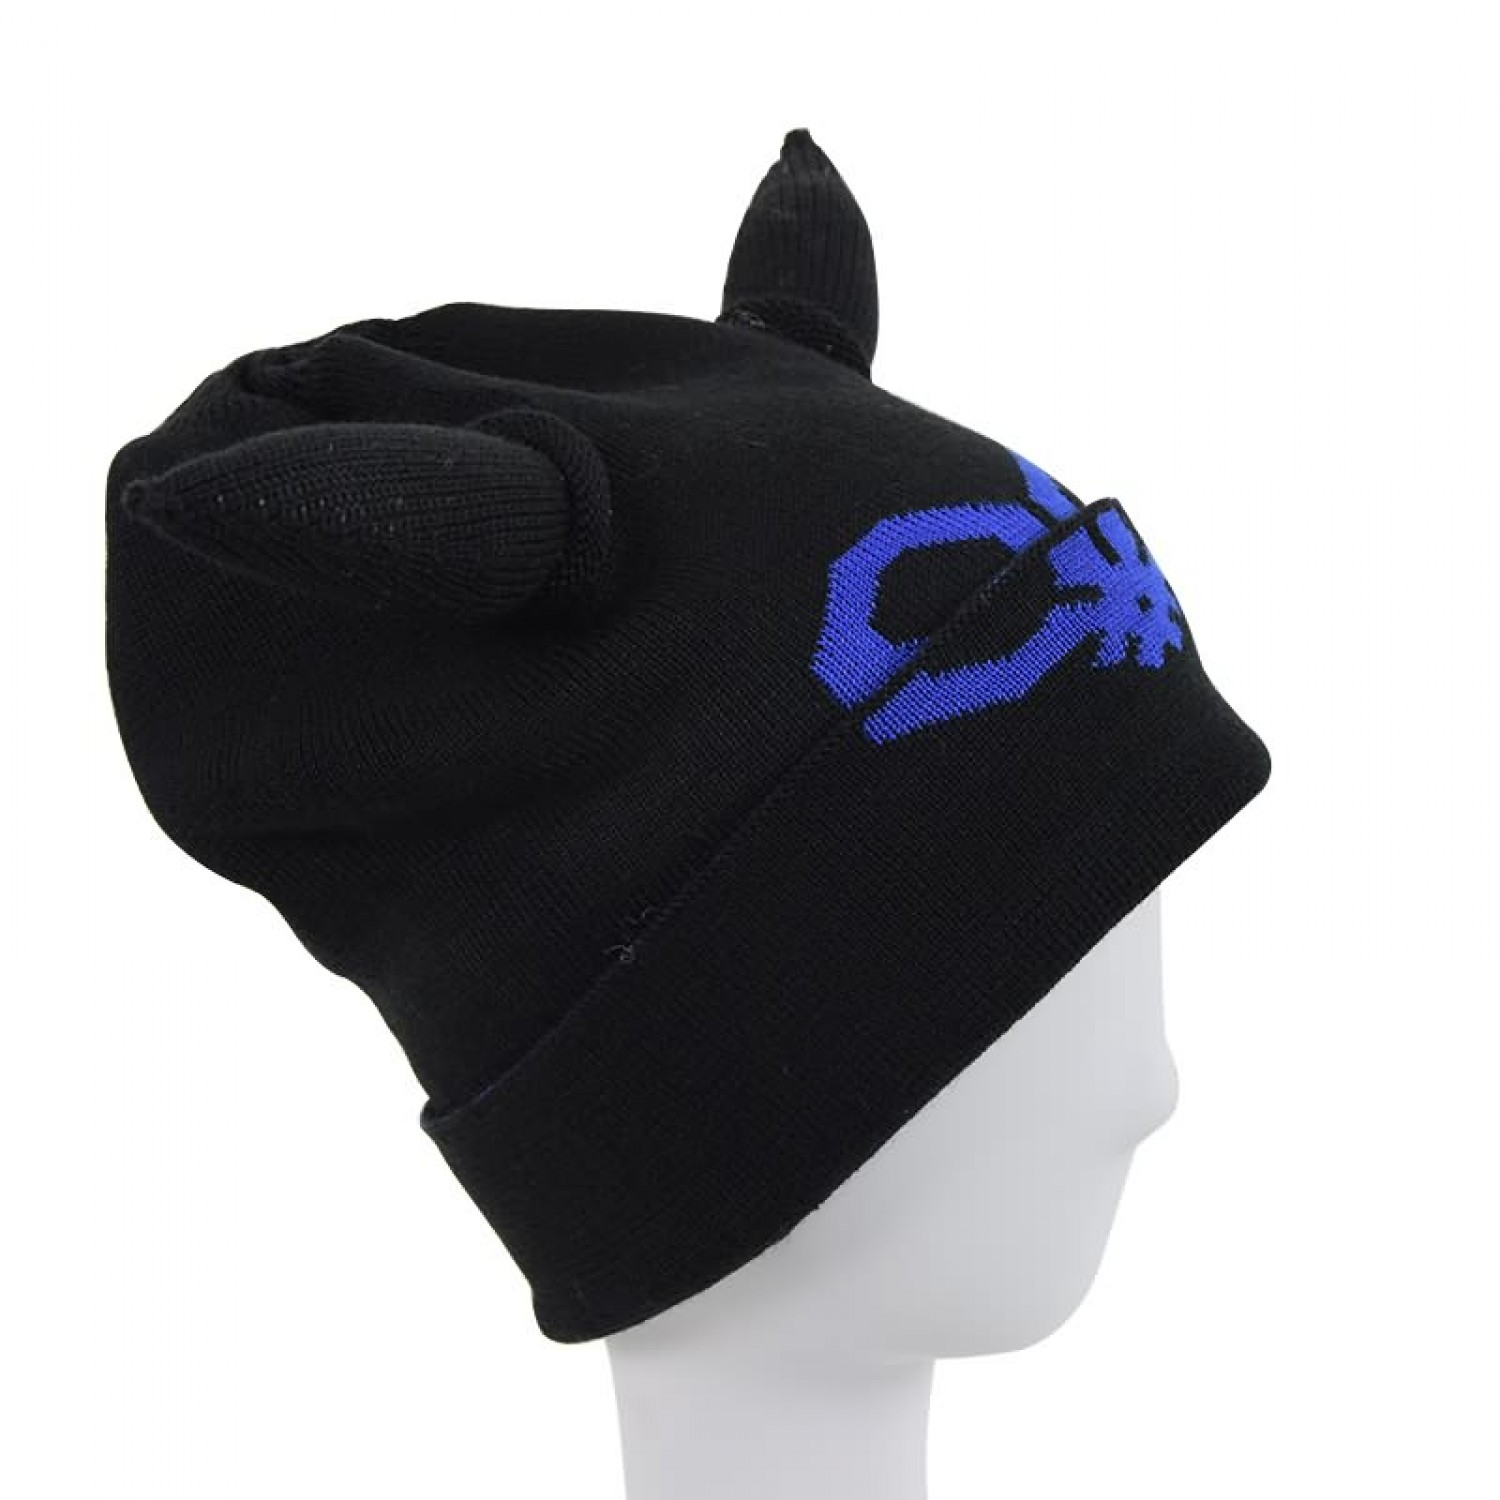 Danganronpa V3 Killing Harmony Ryoma Hoshi Hat Cosplay Accessories Free Shipping 18 99 Ryoma hoshi is tied with himiko yumeno for being my absolute drv3 favorite character. killing harmony ryoma hoshi hat cosplay